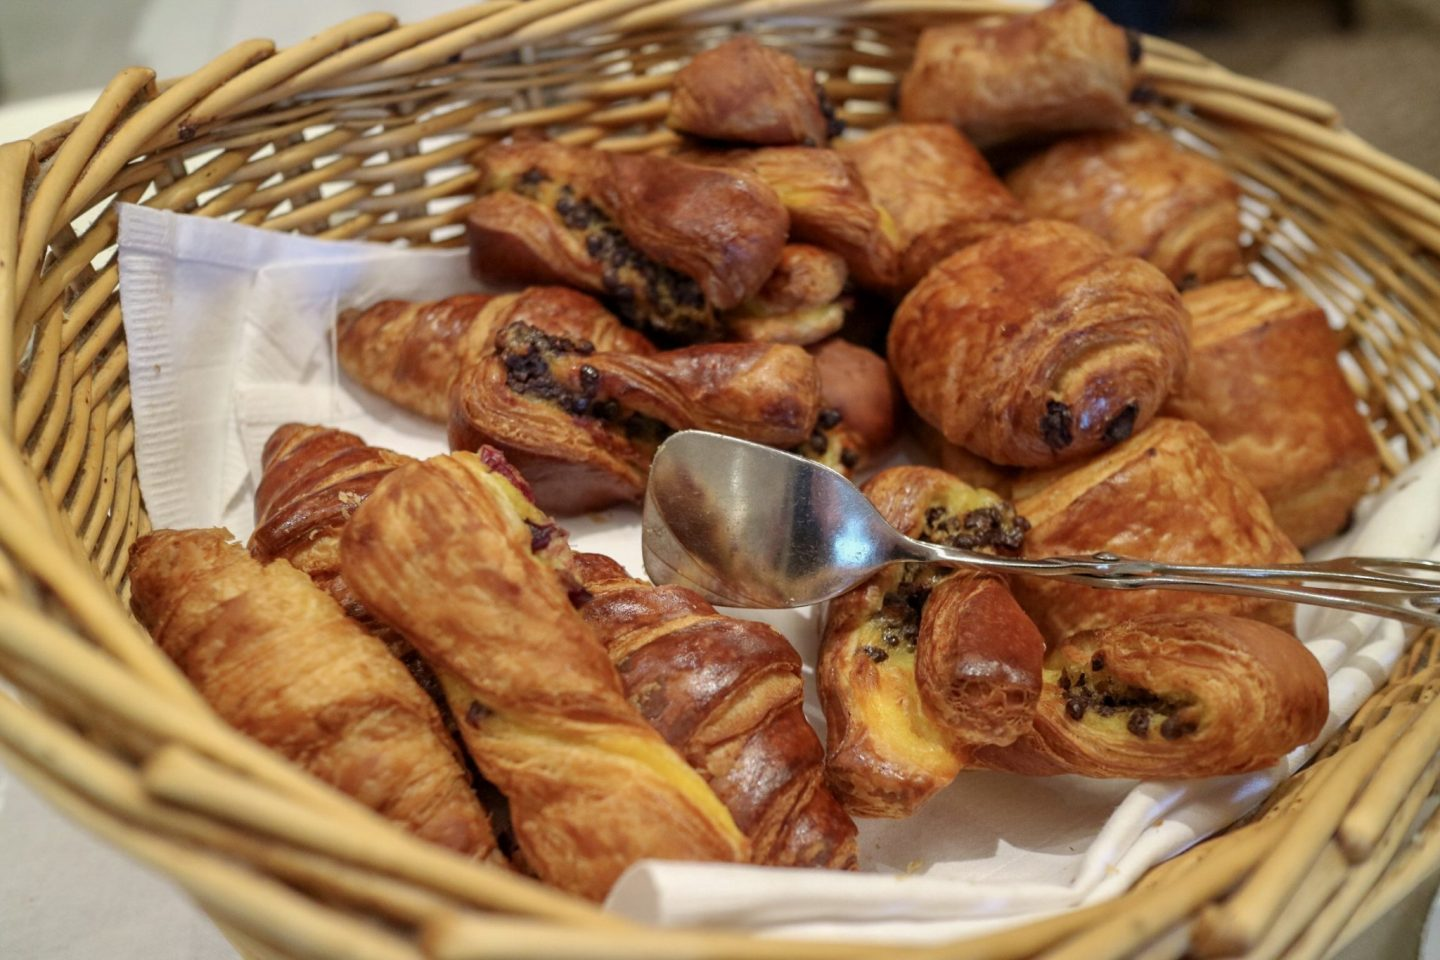 Pastries at Devonshire Arms & Spa